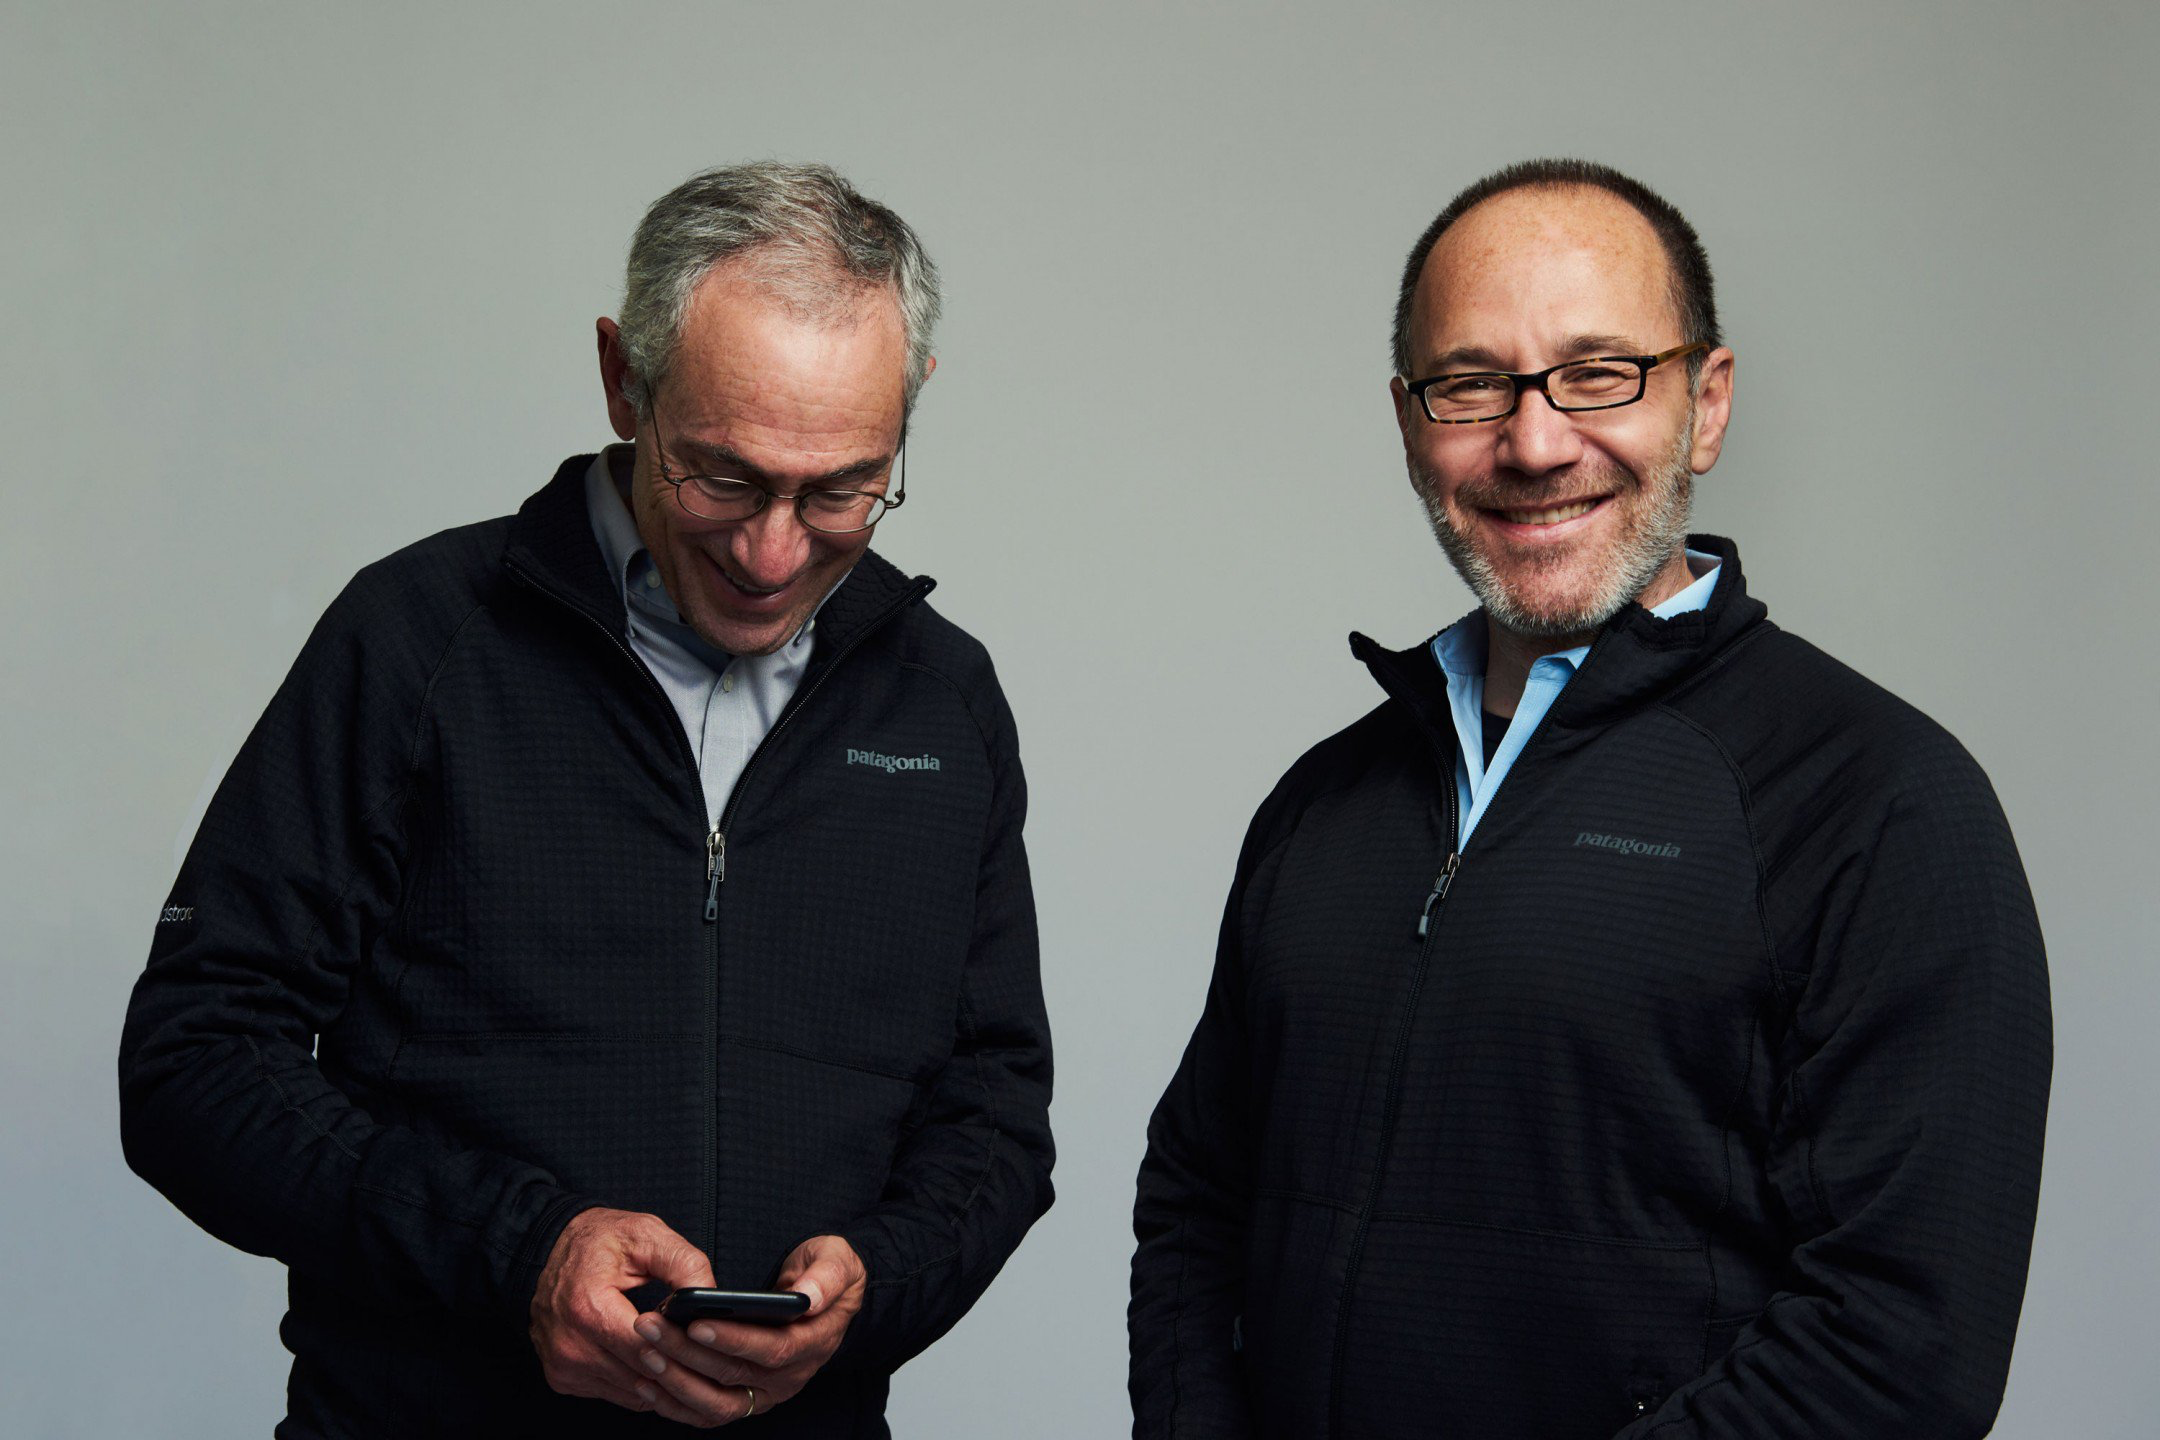 Tom Insel and Paul Dagum